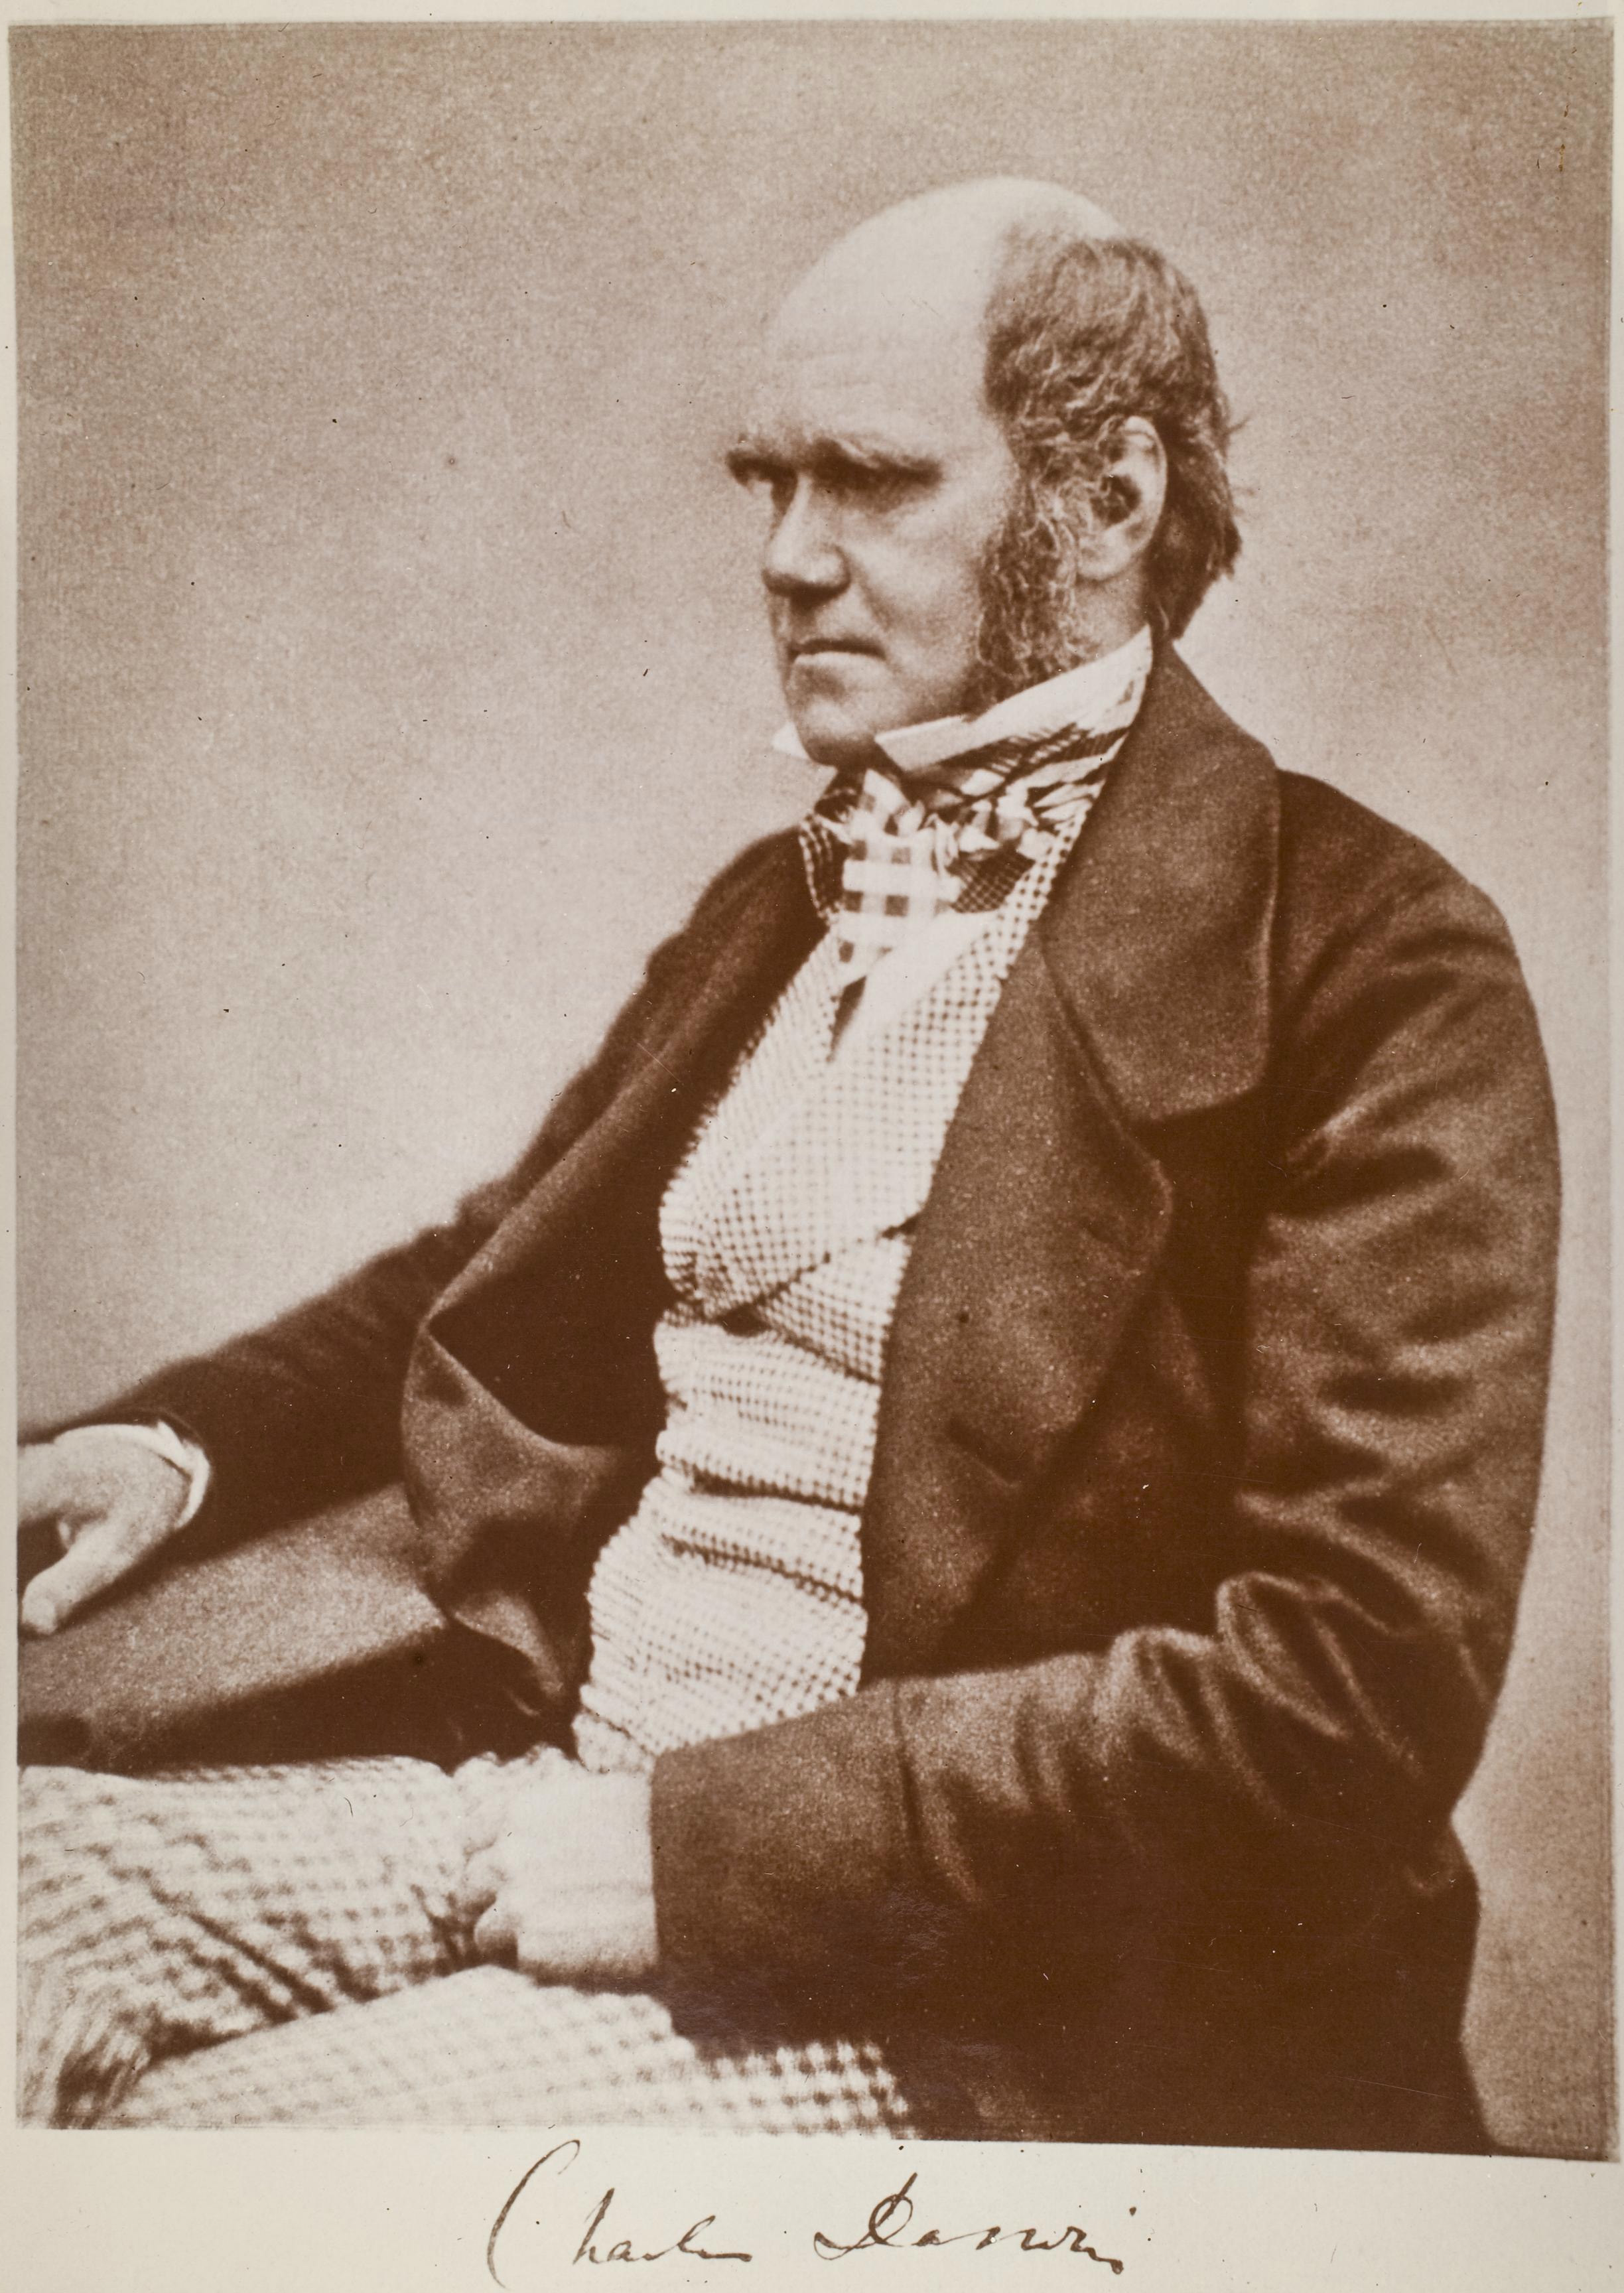 Account of the life of the genius charles darwin